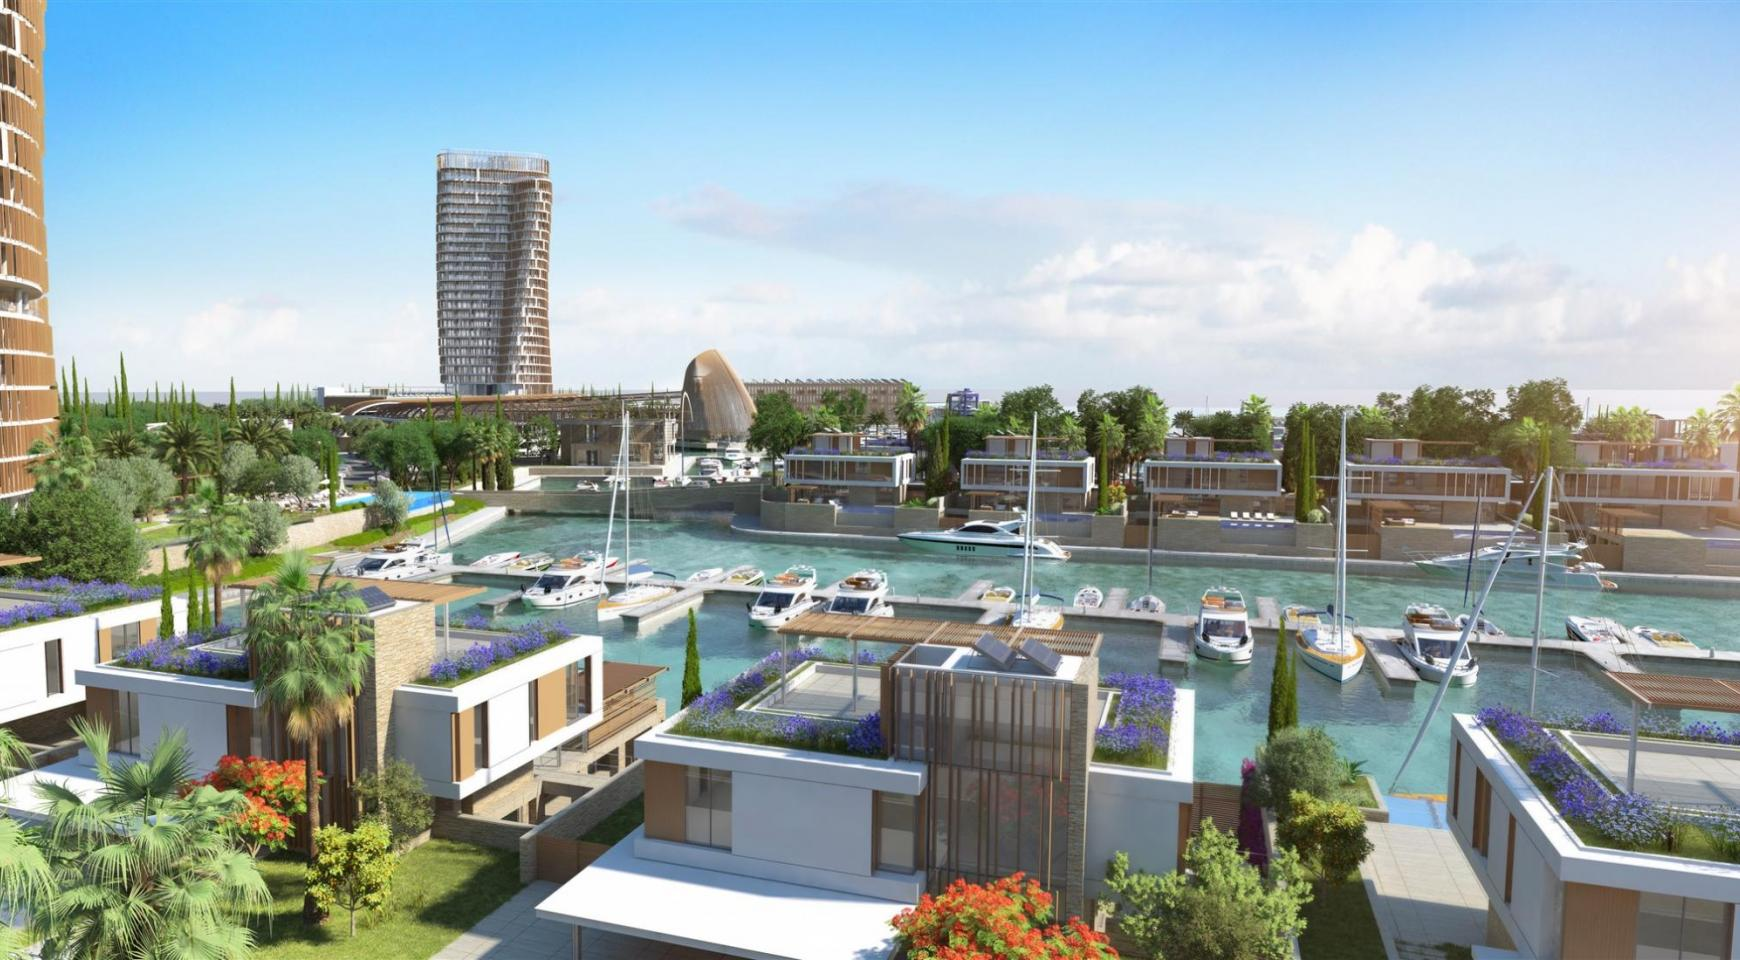 Modern 2 Bedroom Apartment in an Exclusive Project by the Sea - 2